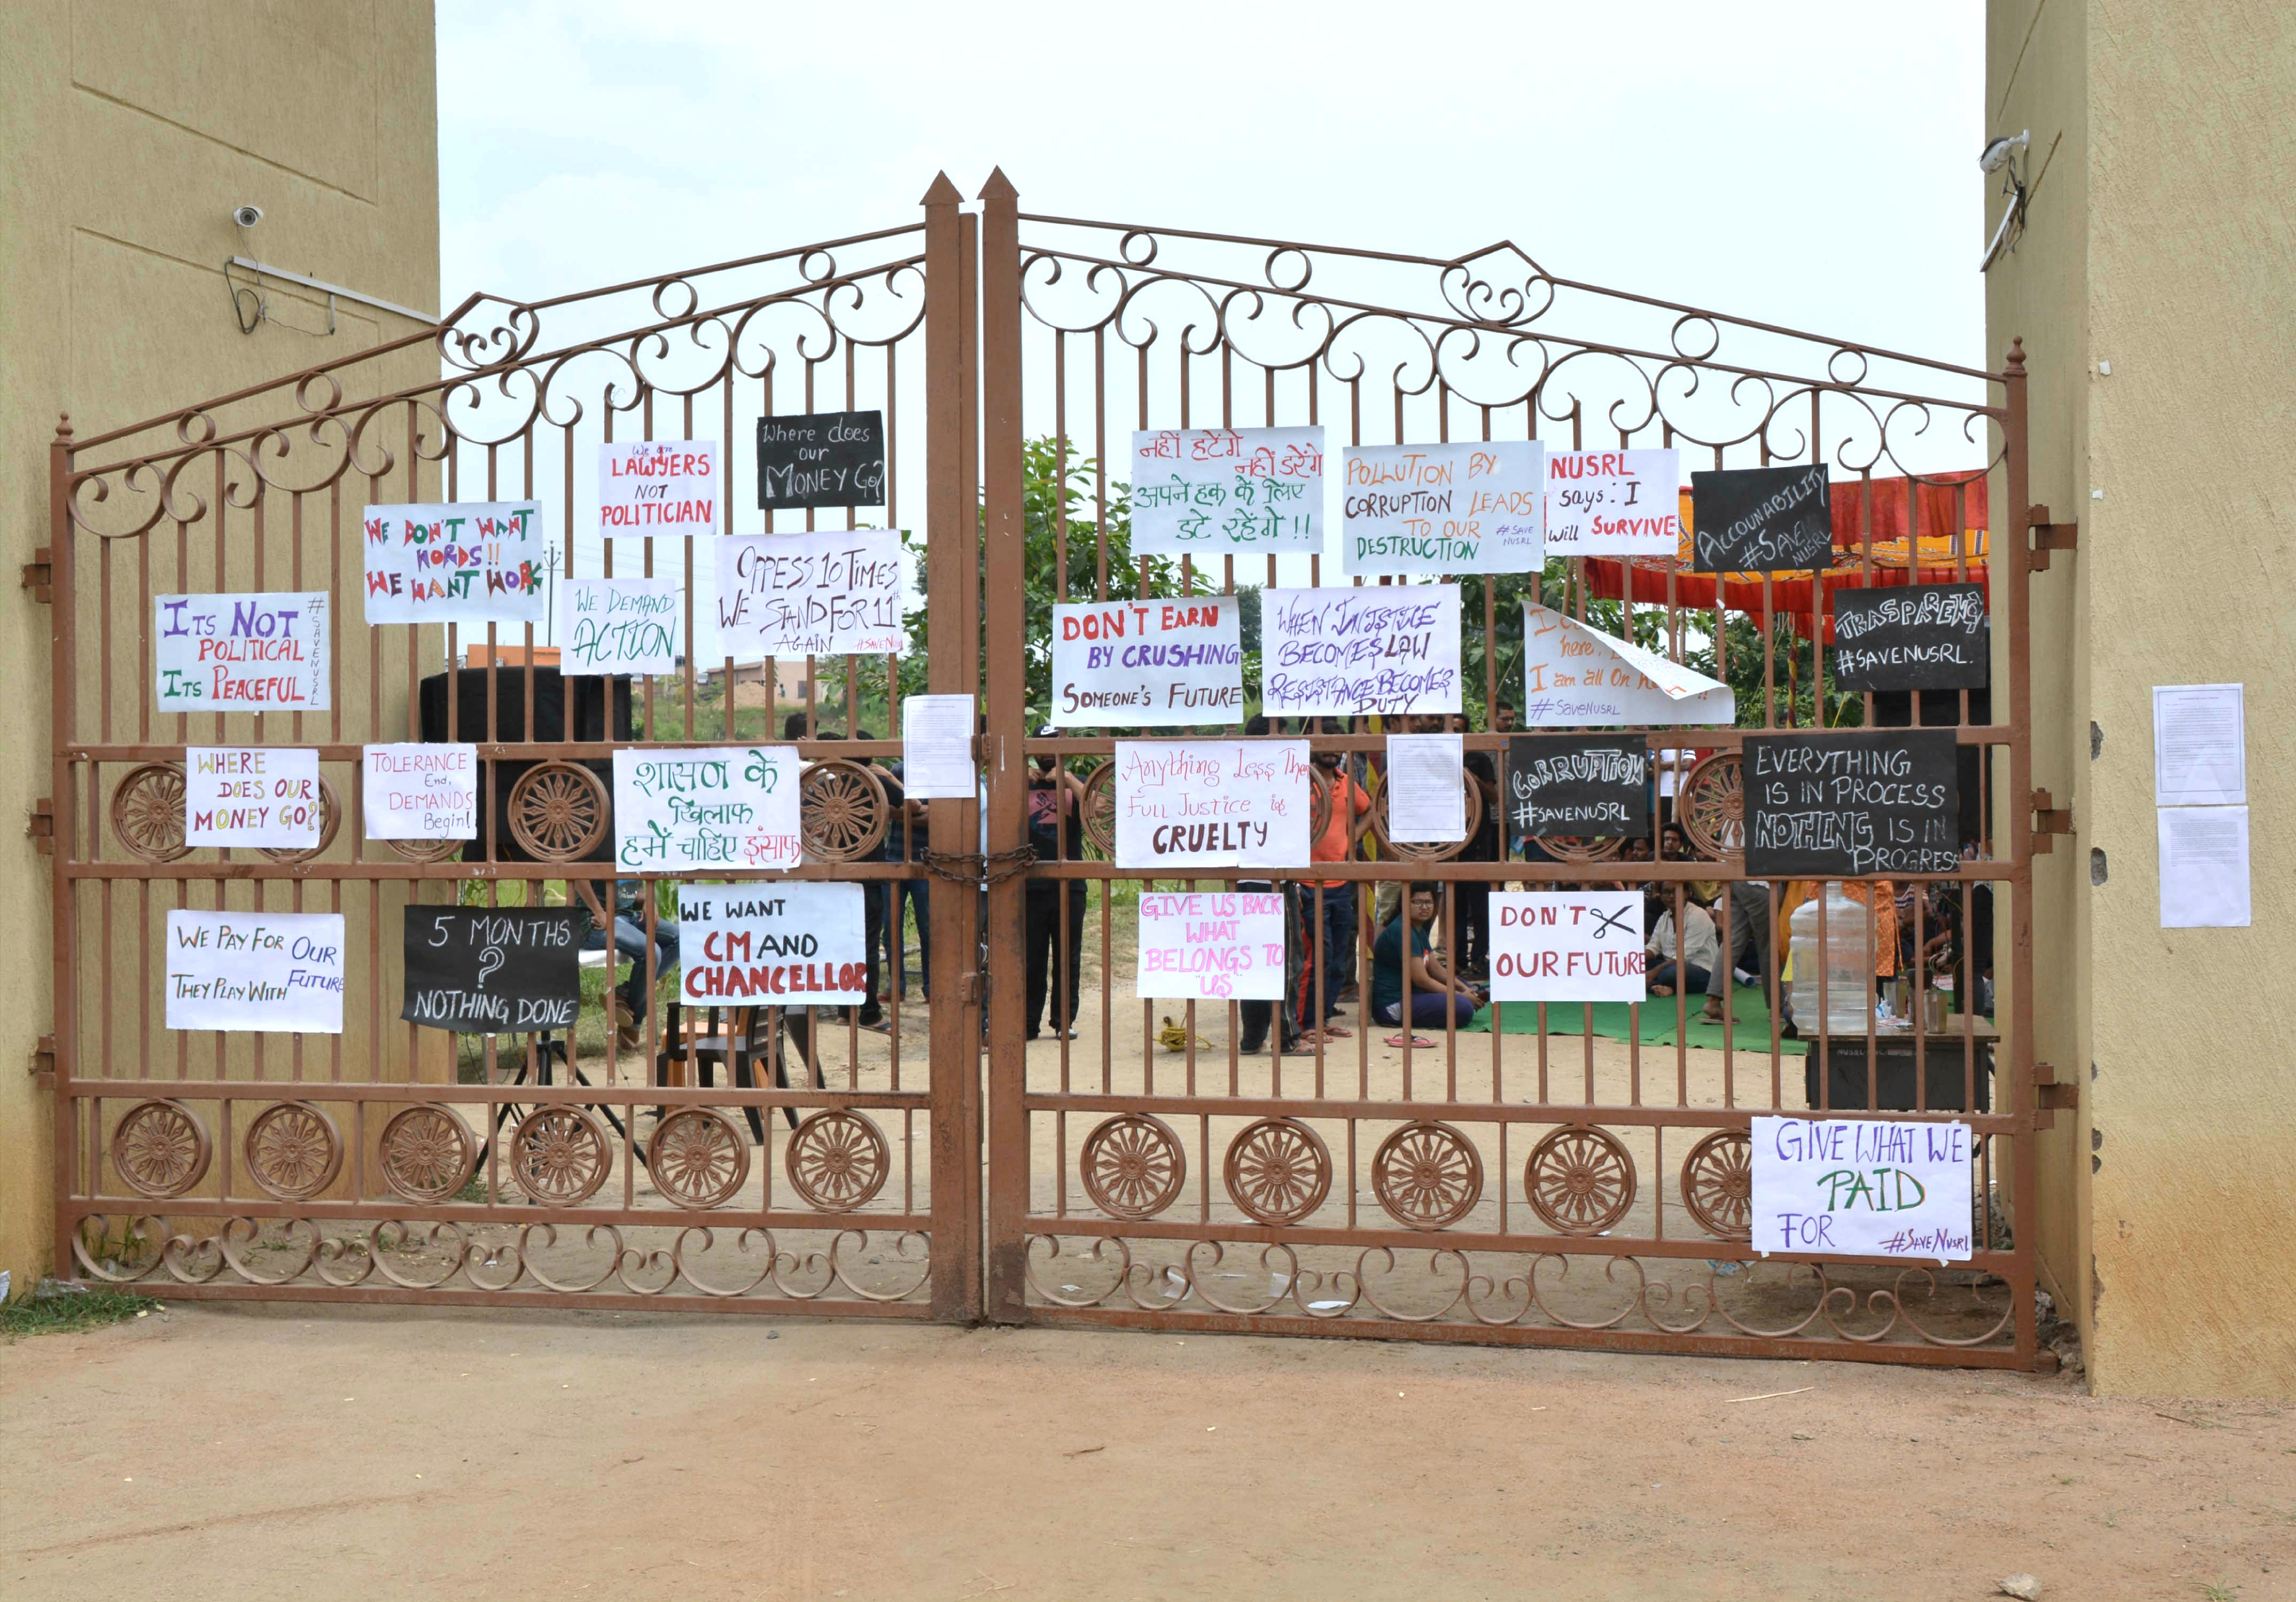 NUSRL students on strike :: Demanding removal of VC